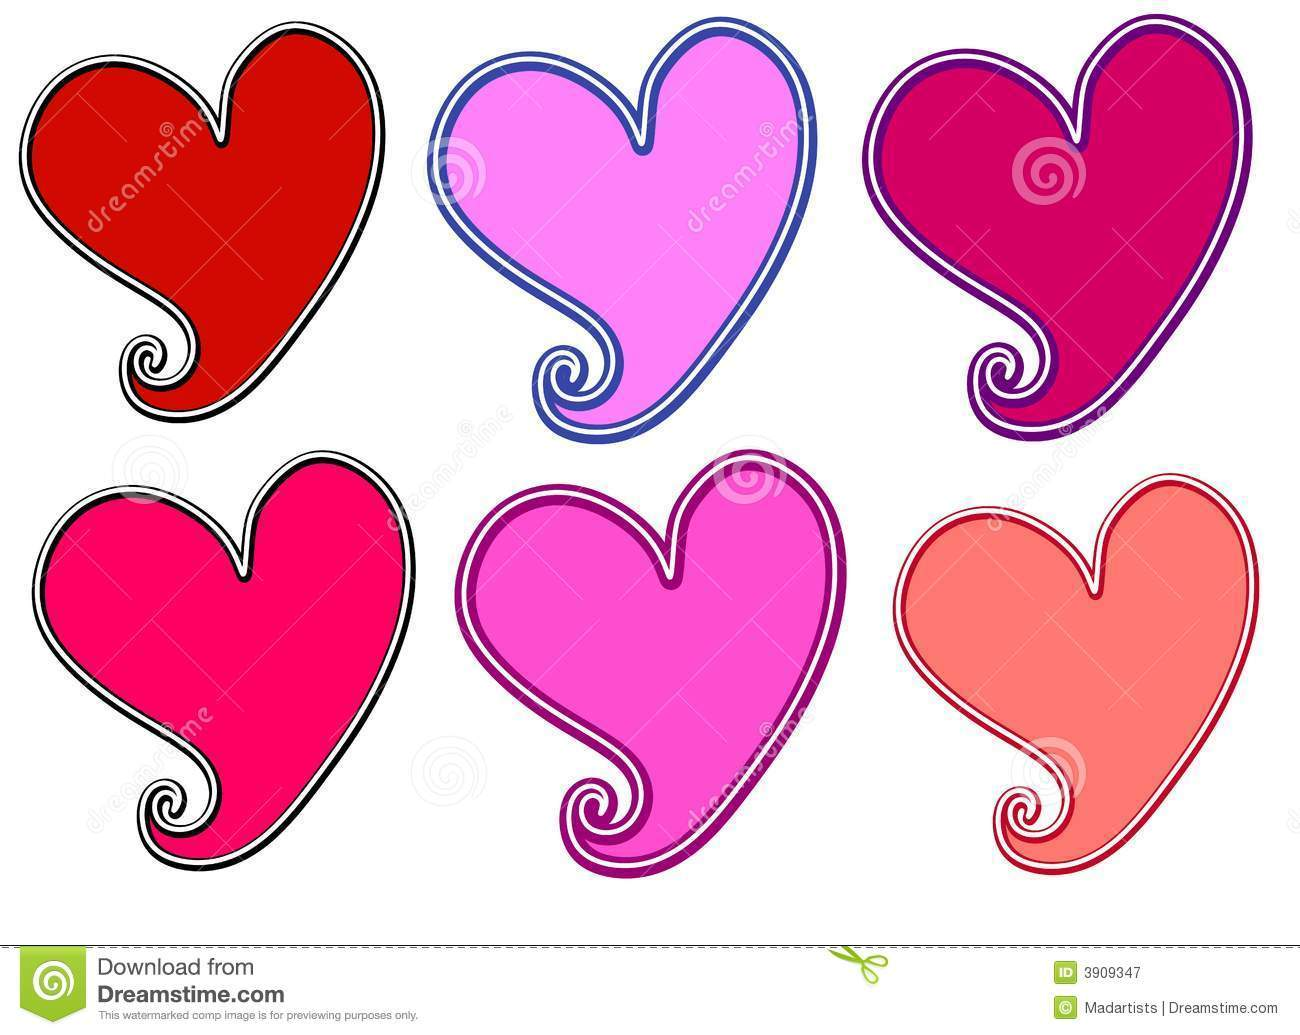 5 hearts clipart graphic freeuse download 5 hearts clipart 1 » Clipart Portal graphic freeuse download